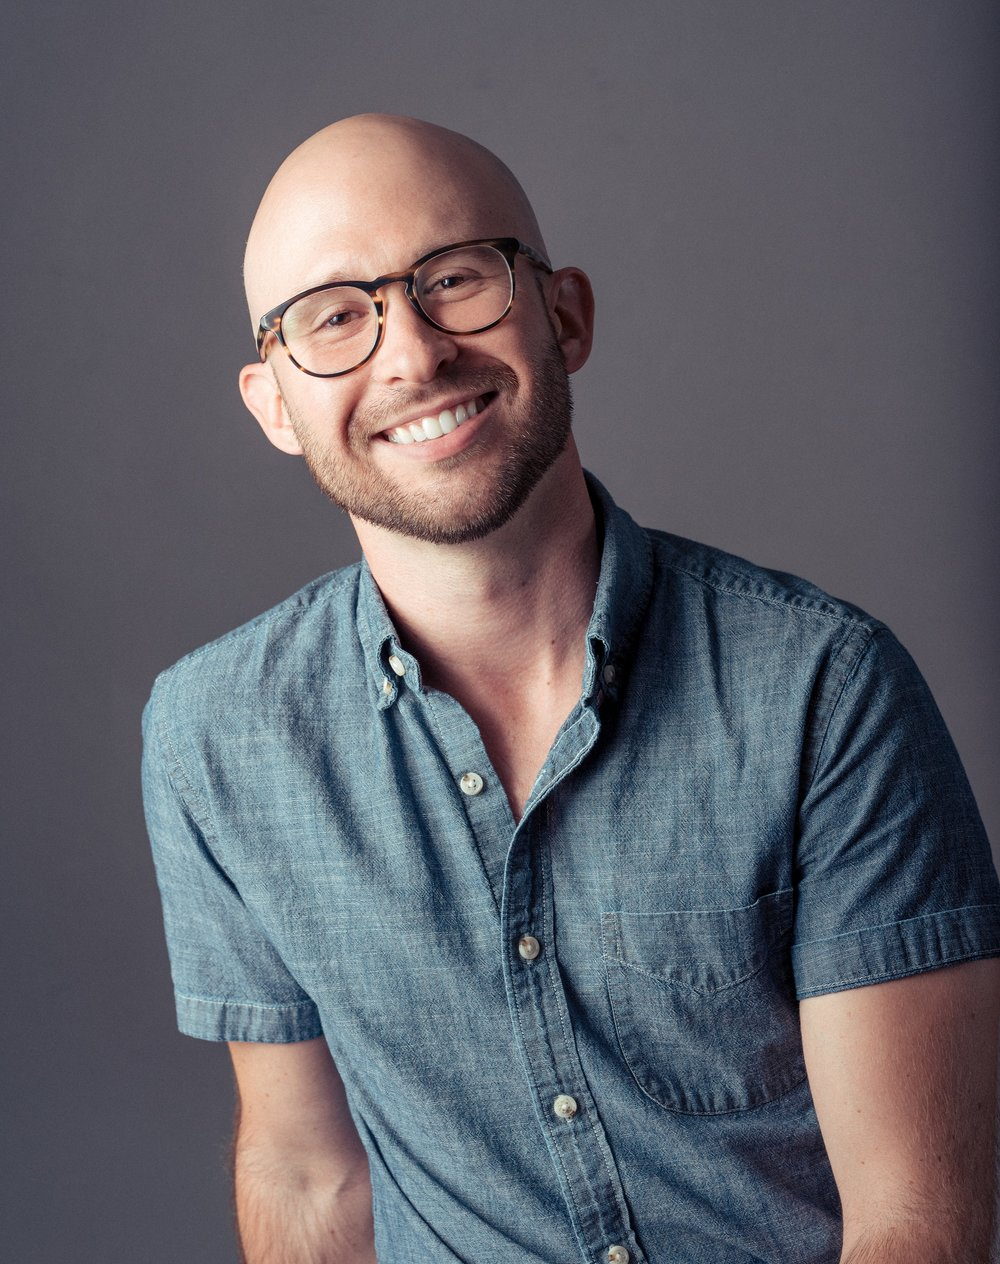 Rob Sesser - Rob Sesser was born and raised in Walla Walla, Washington, and is currently living his best life in Dallas, Texas where he is the Social Media Art Director for Neiman Marcus. His hobbies include running, keeping his beloved fiddle fig alive, and rewatching old episodes of The Hills.Website